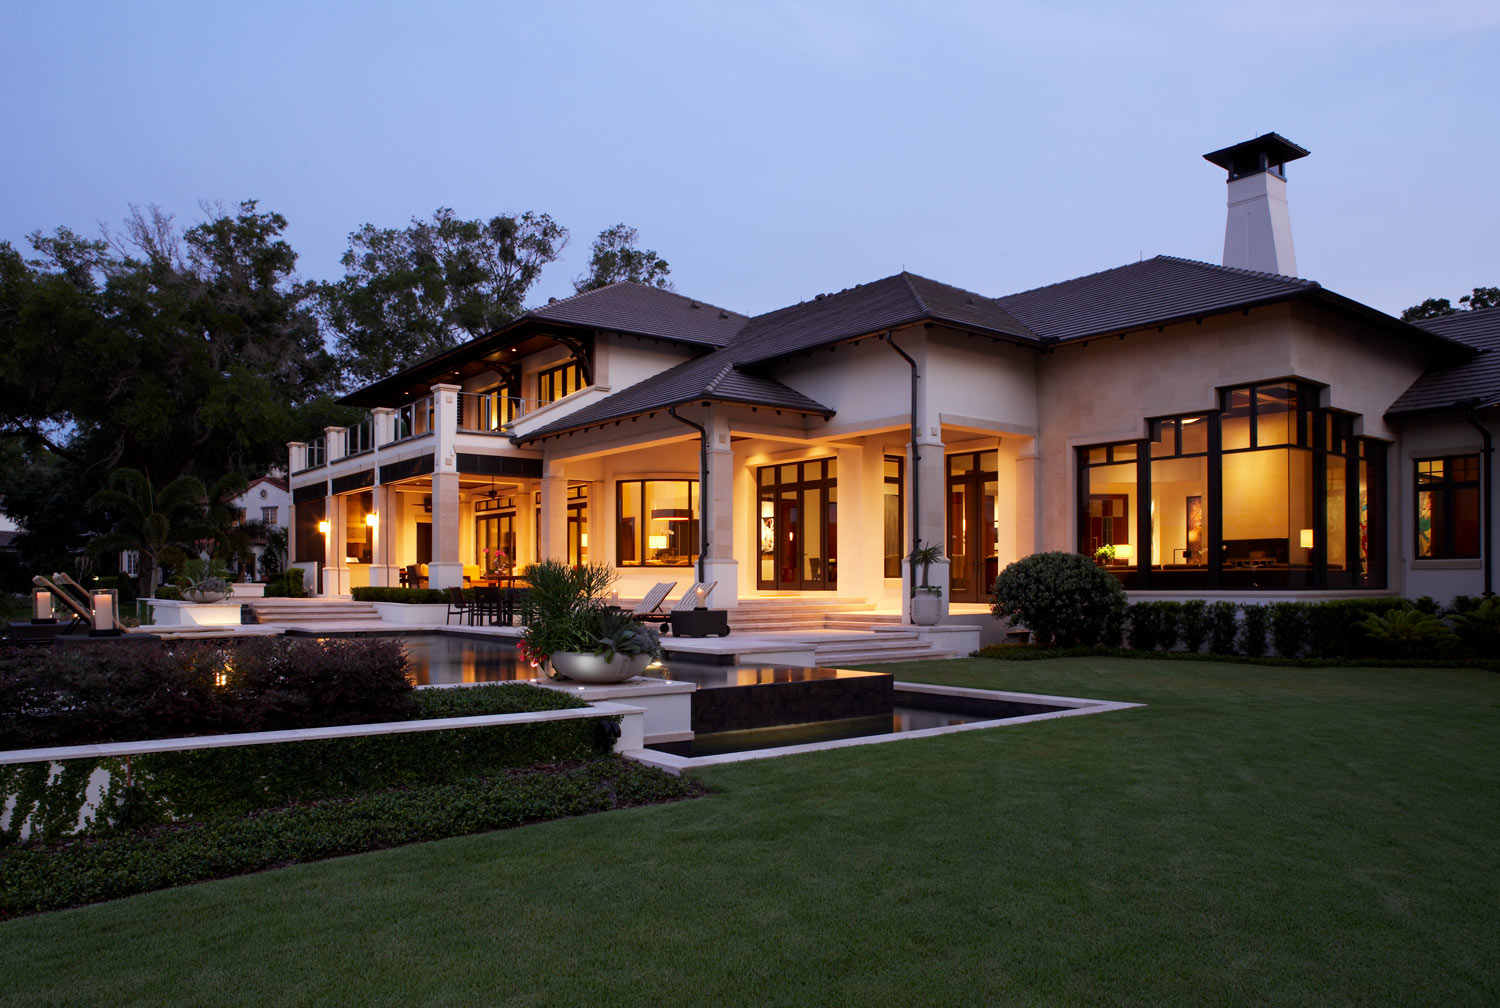 Sargent Architectural Photography